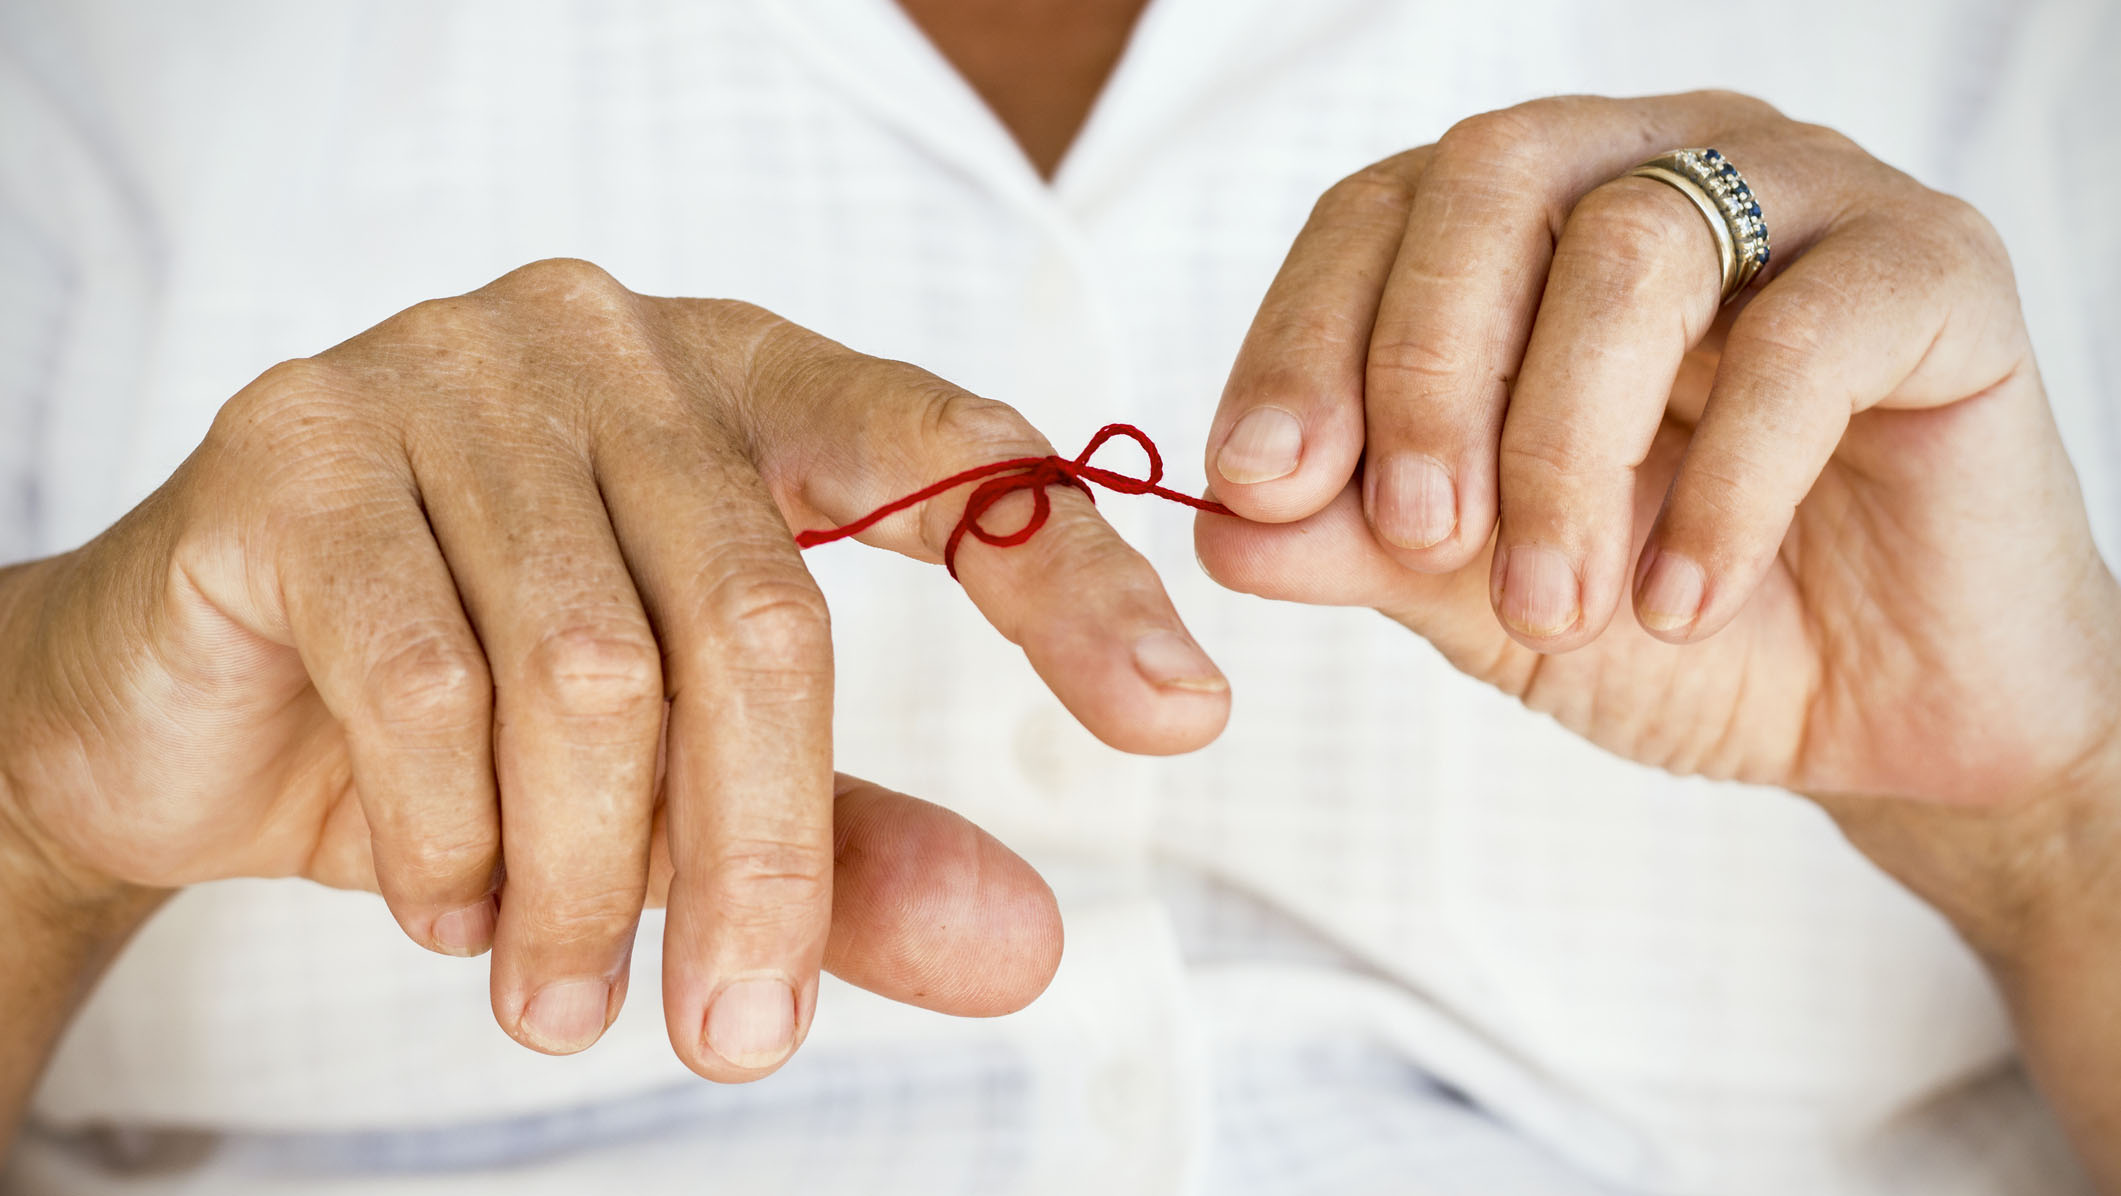 Menopausal woman with string tied on her finger